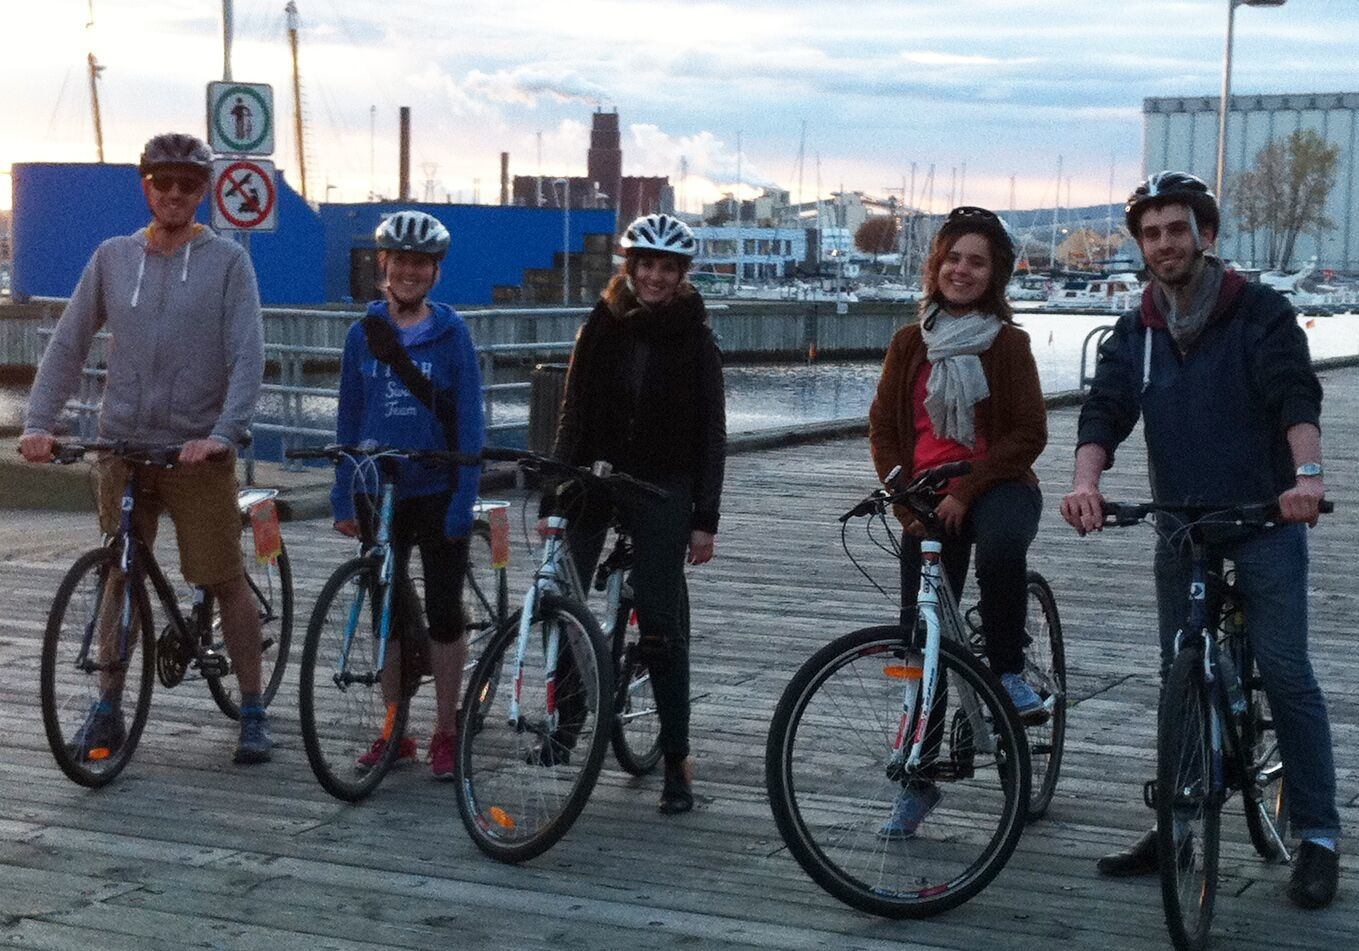 Quebec along the river bike tour - with your own bike, 55$